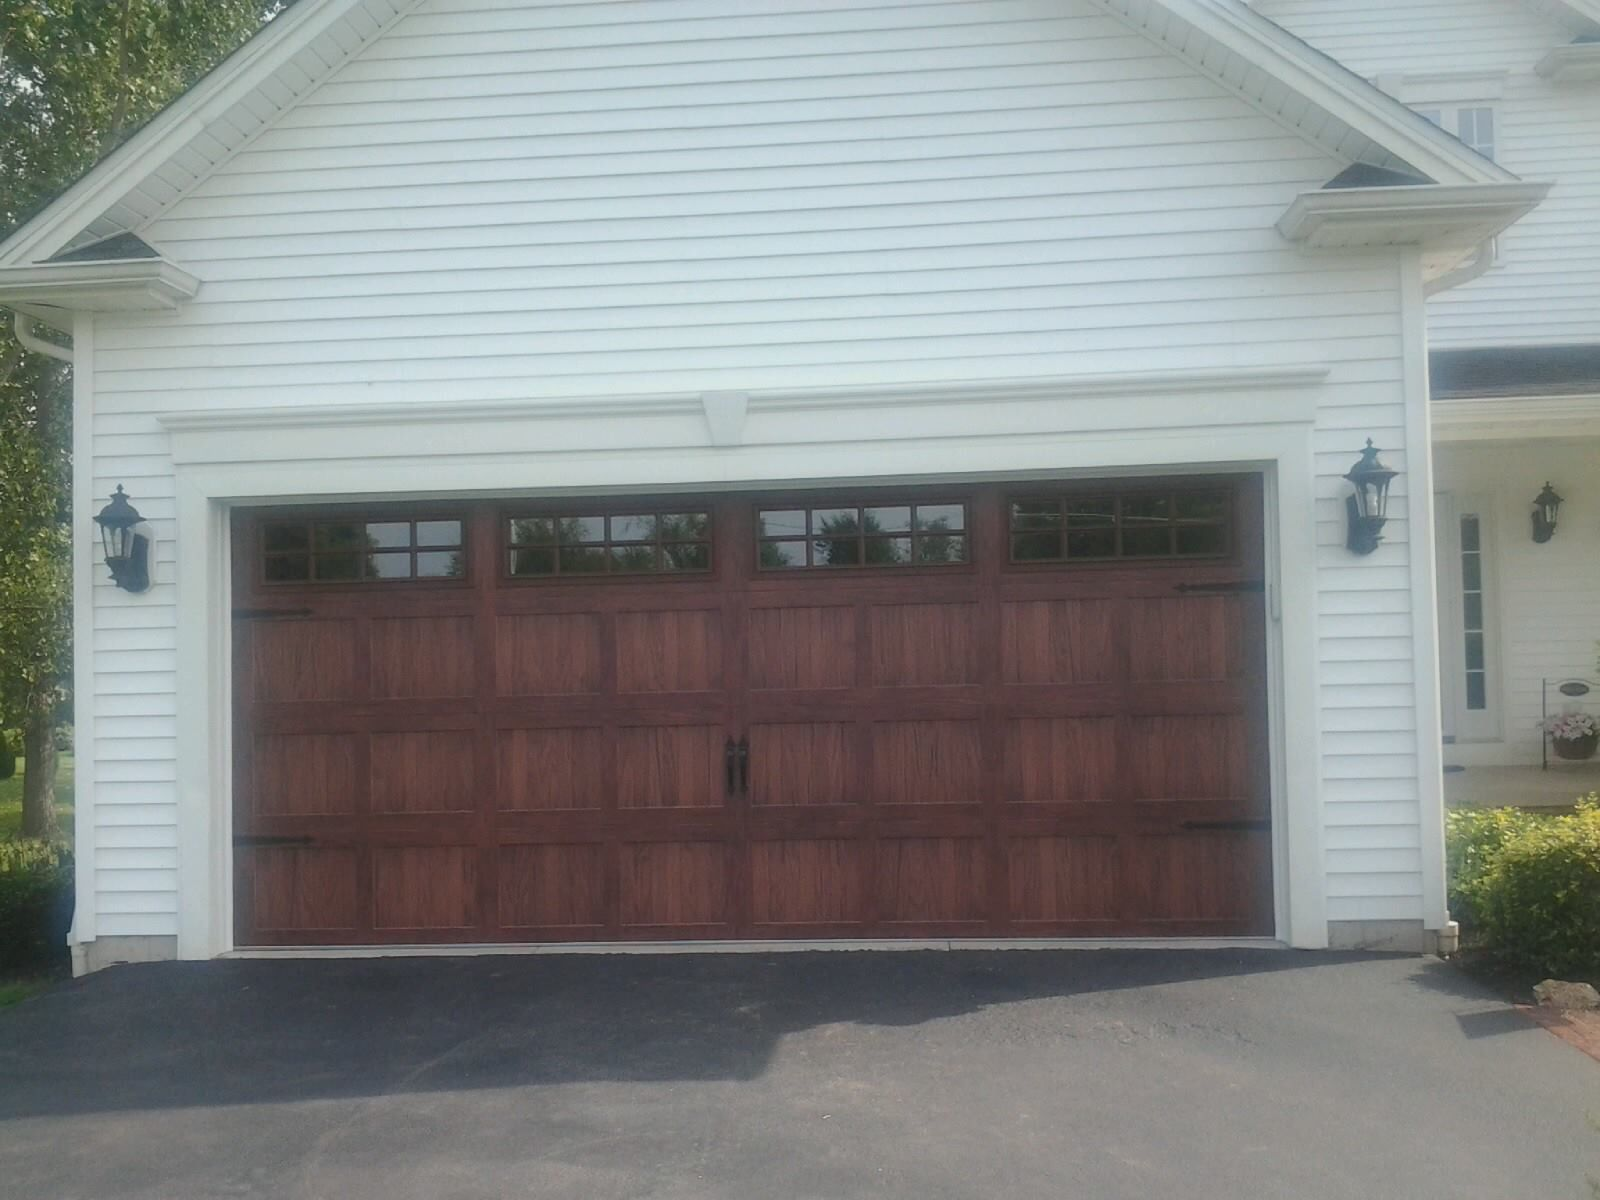 1200 #636C48 Carriage Garage Door Beautiful Homes Inside And Out Pinterest pic Beautiful Garage Doors 38011600